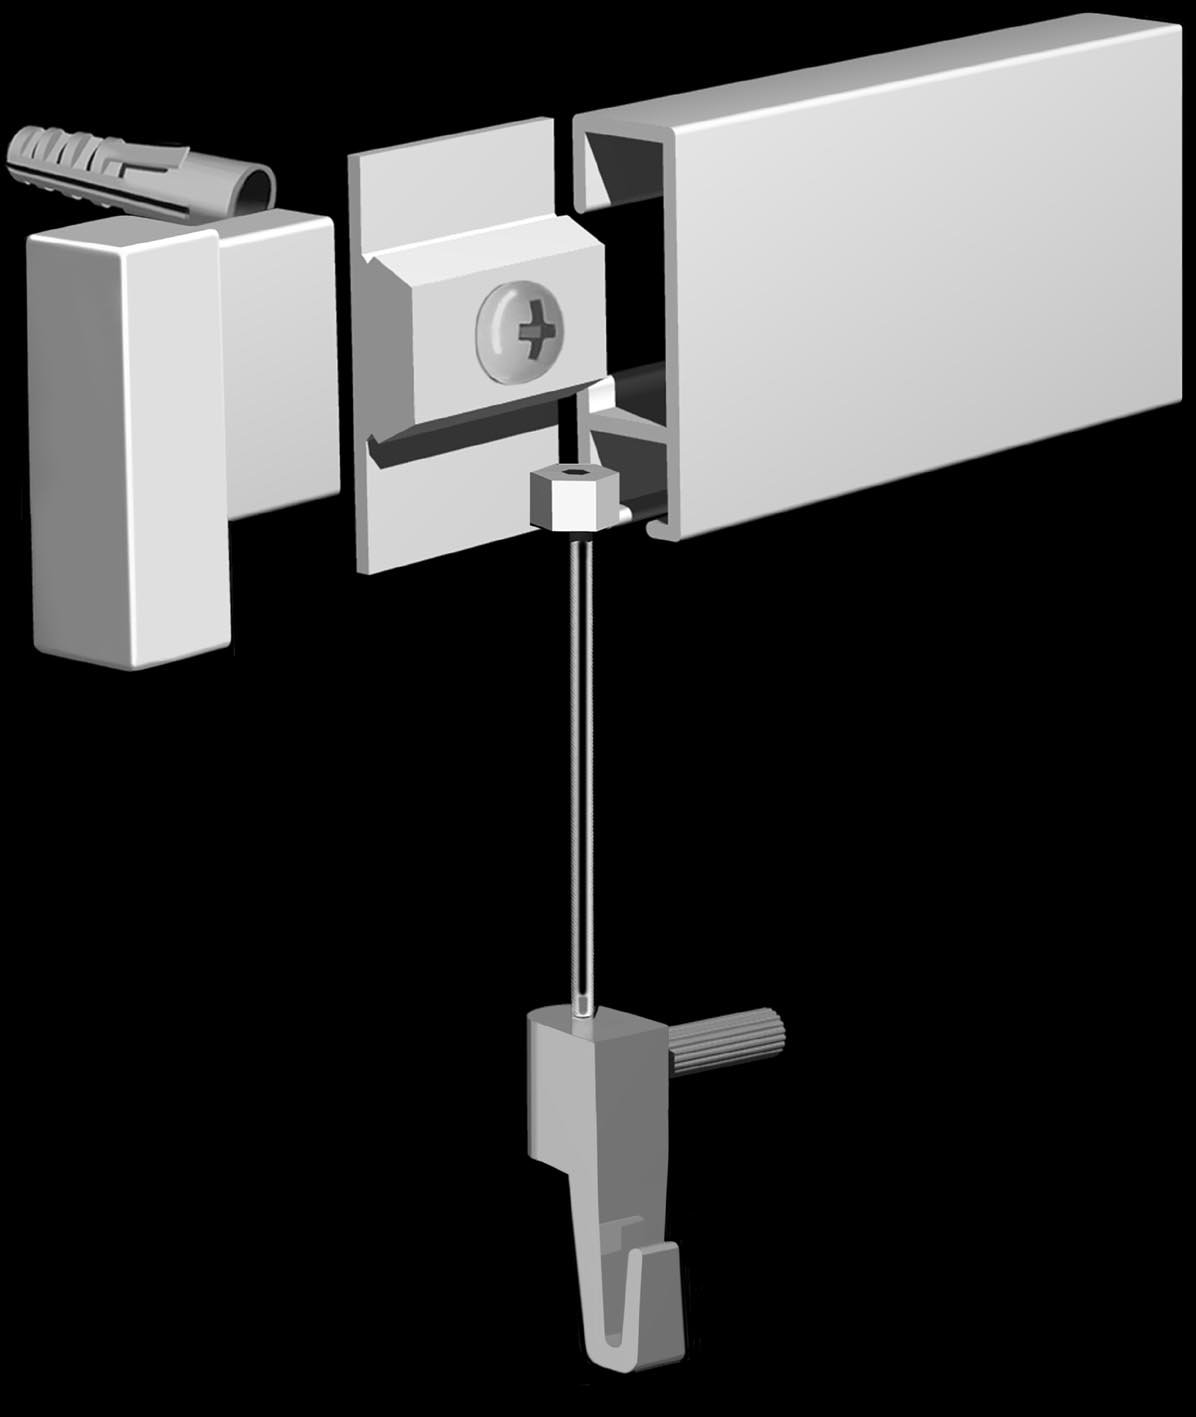 Arti Gallery Silver Picture Hanging System Deluxe Rail Kit (With Twister & Slider Nylon Cables) by ART DISPLAY SYSTEMS